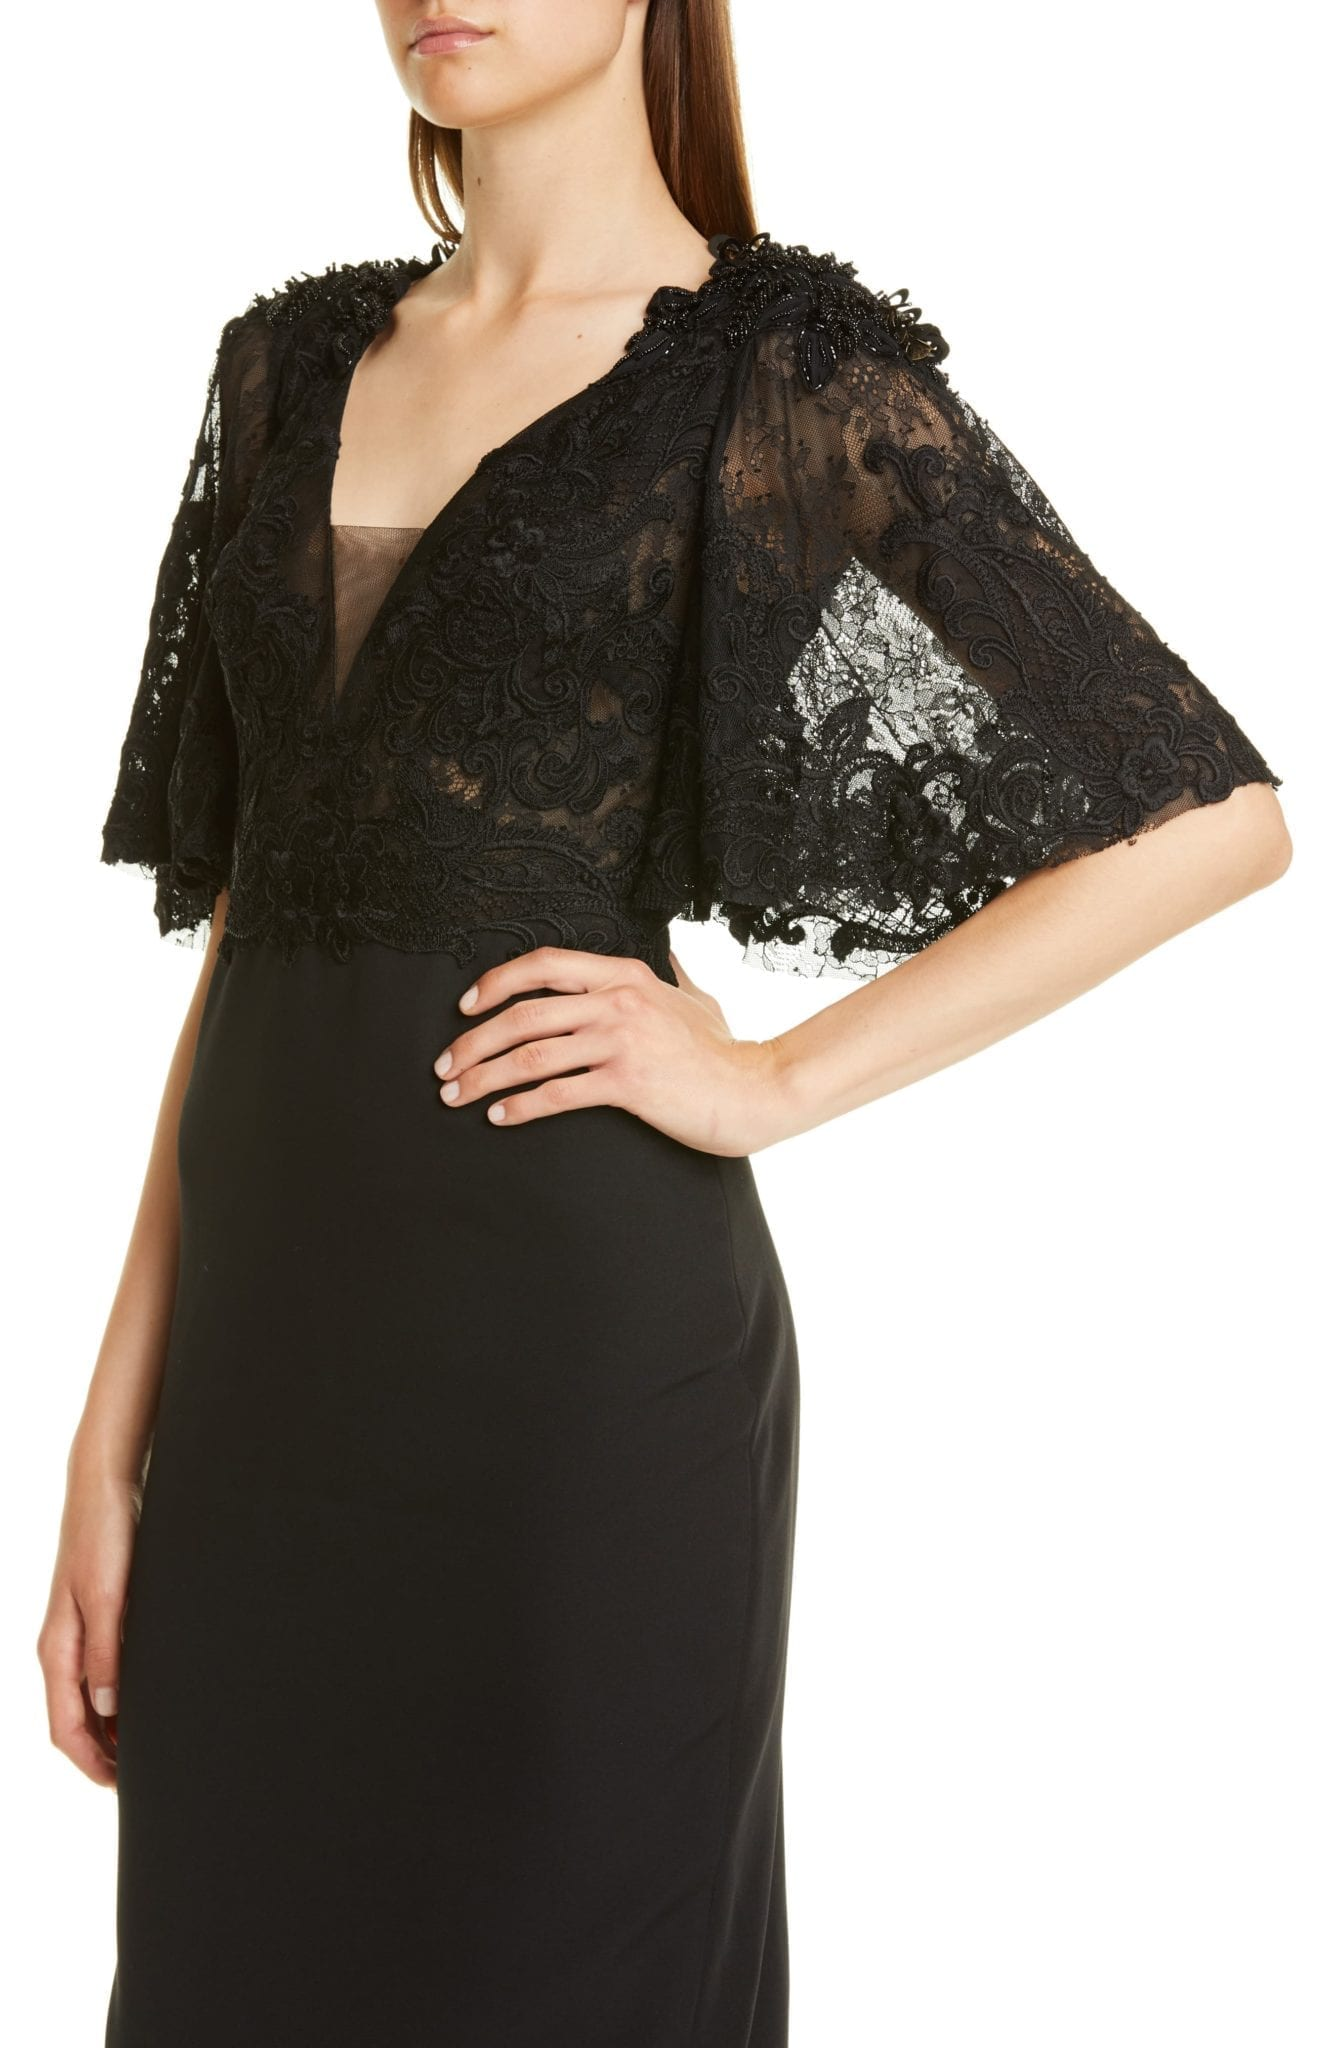 BADGLEY MISCHKA COUTURE. Badgley Mischka Couture Embellished Lace Bodice Cocktail Dress